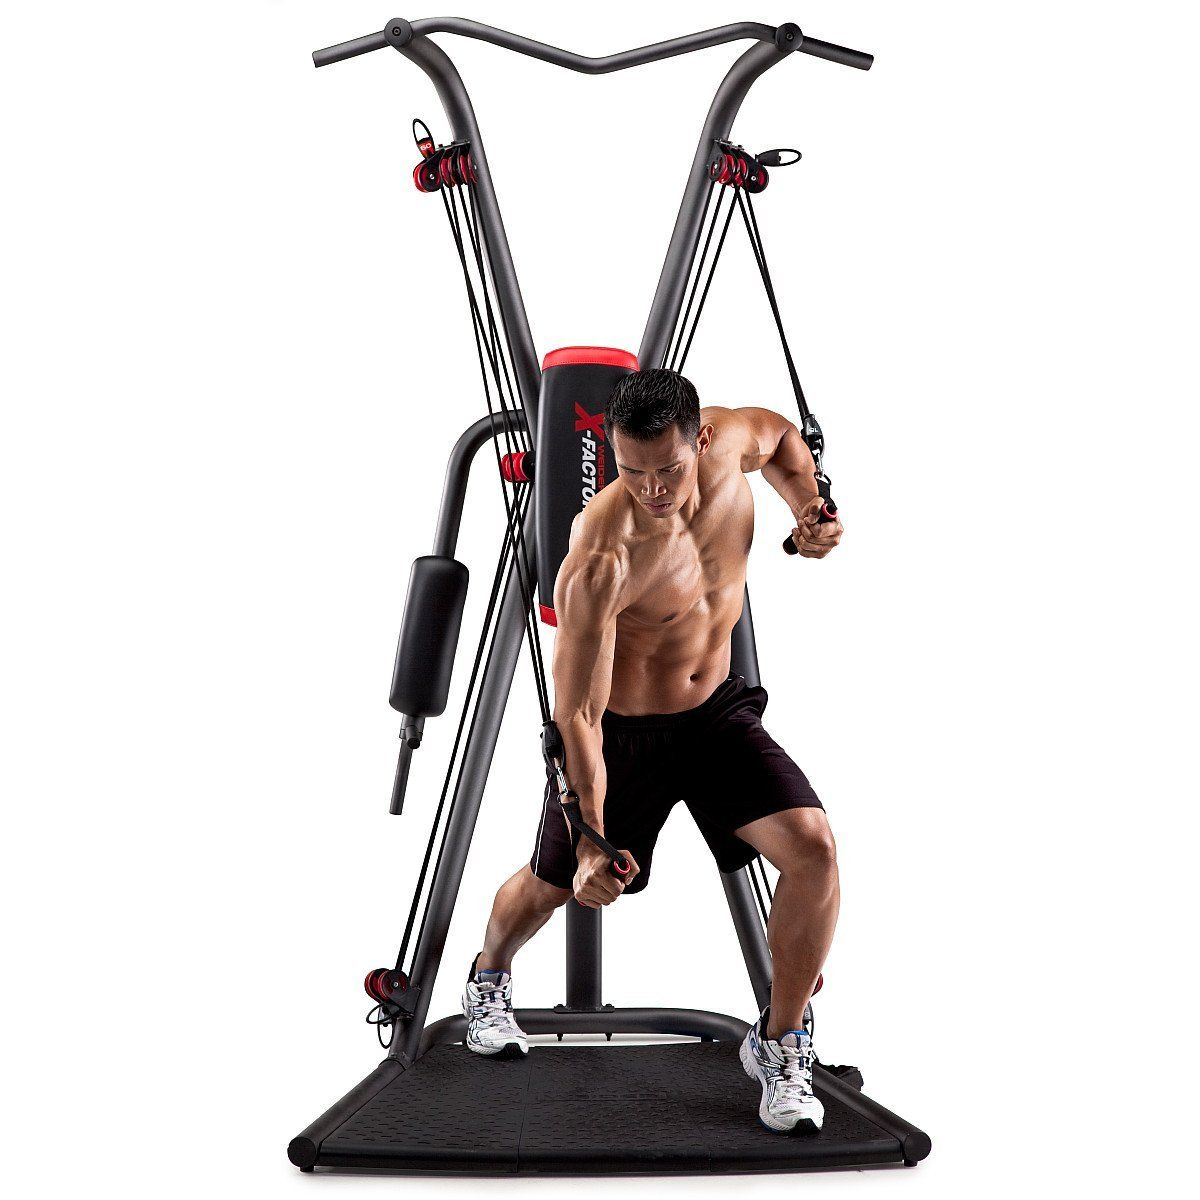 Weider factor plus home gym fold away vertical knee